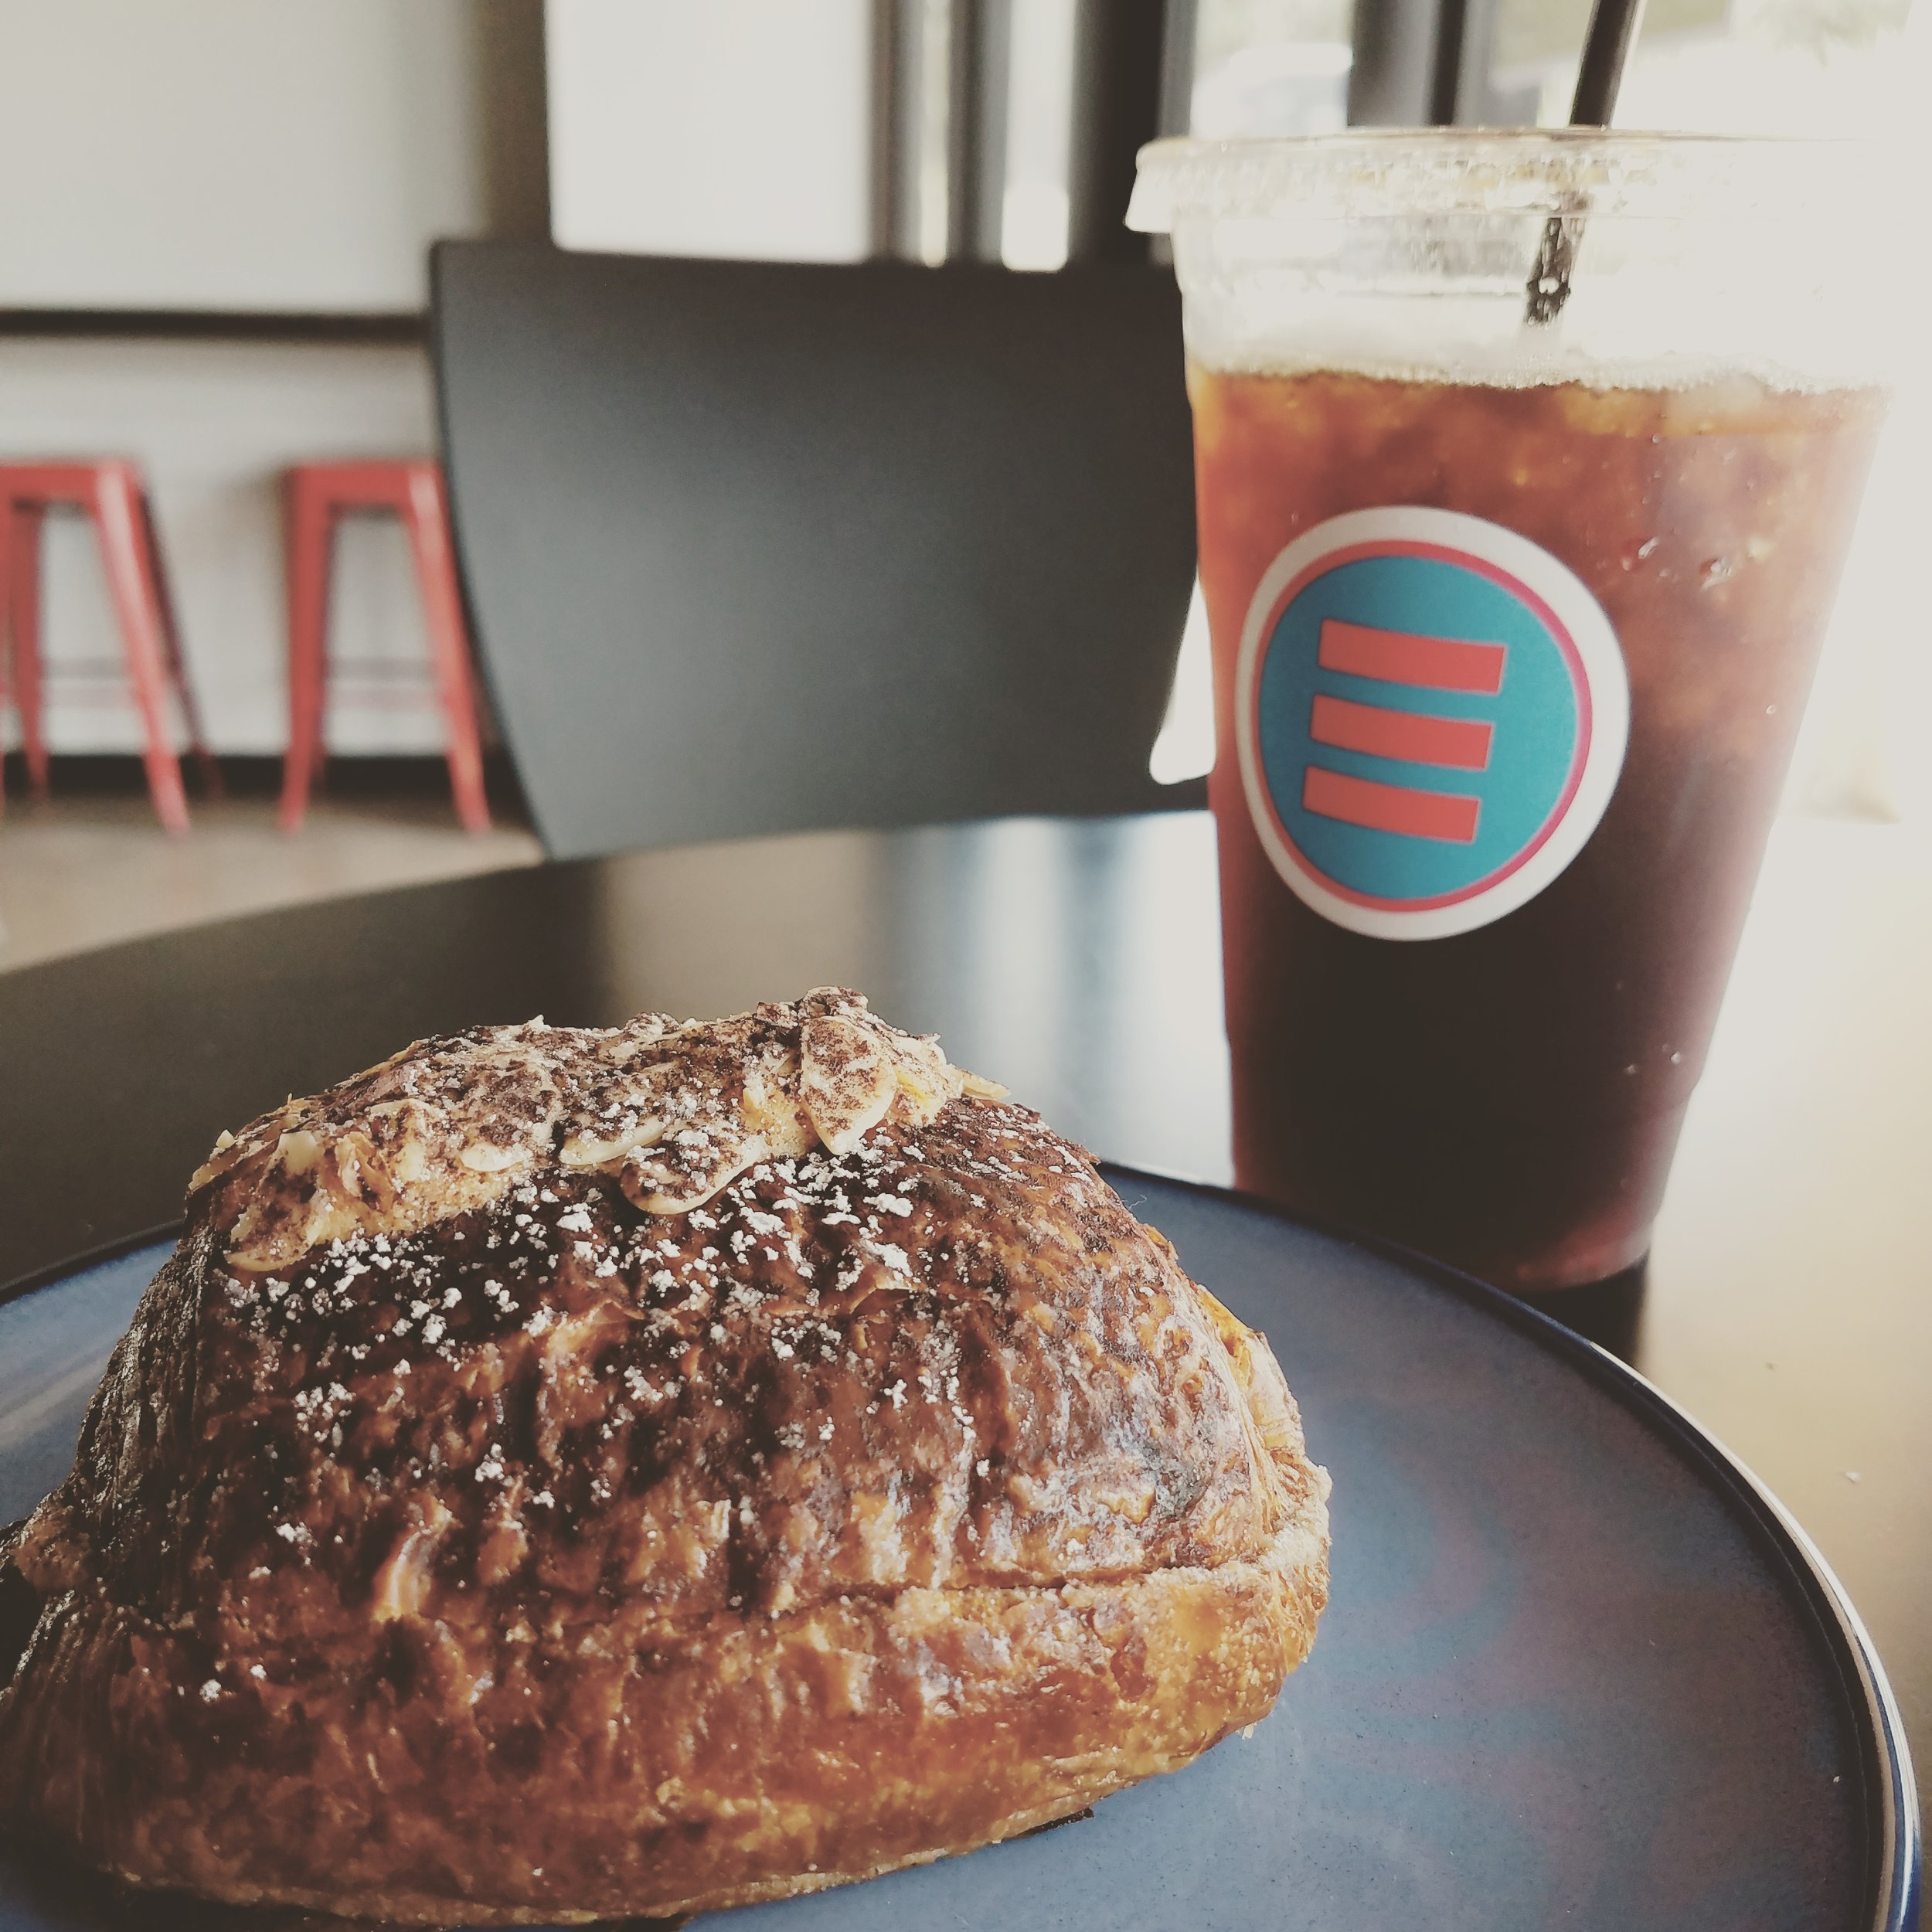 Iced coffee and chocolate croissant